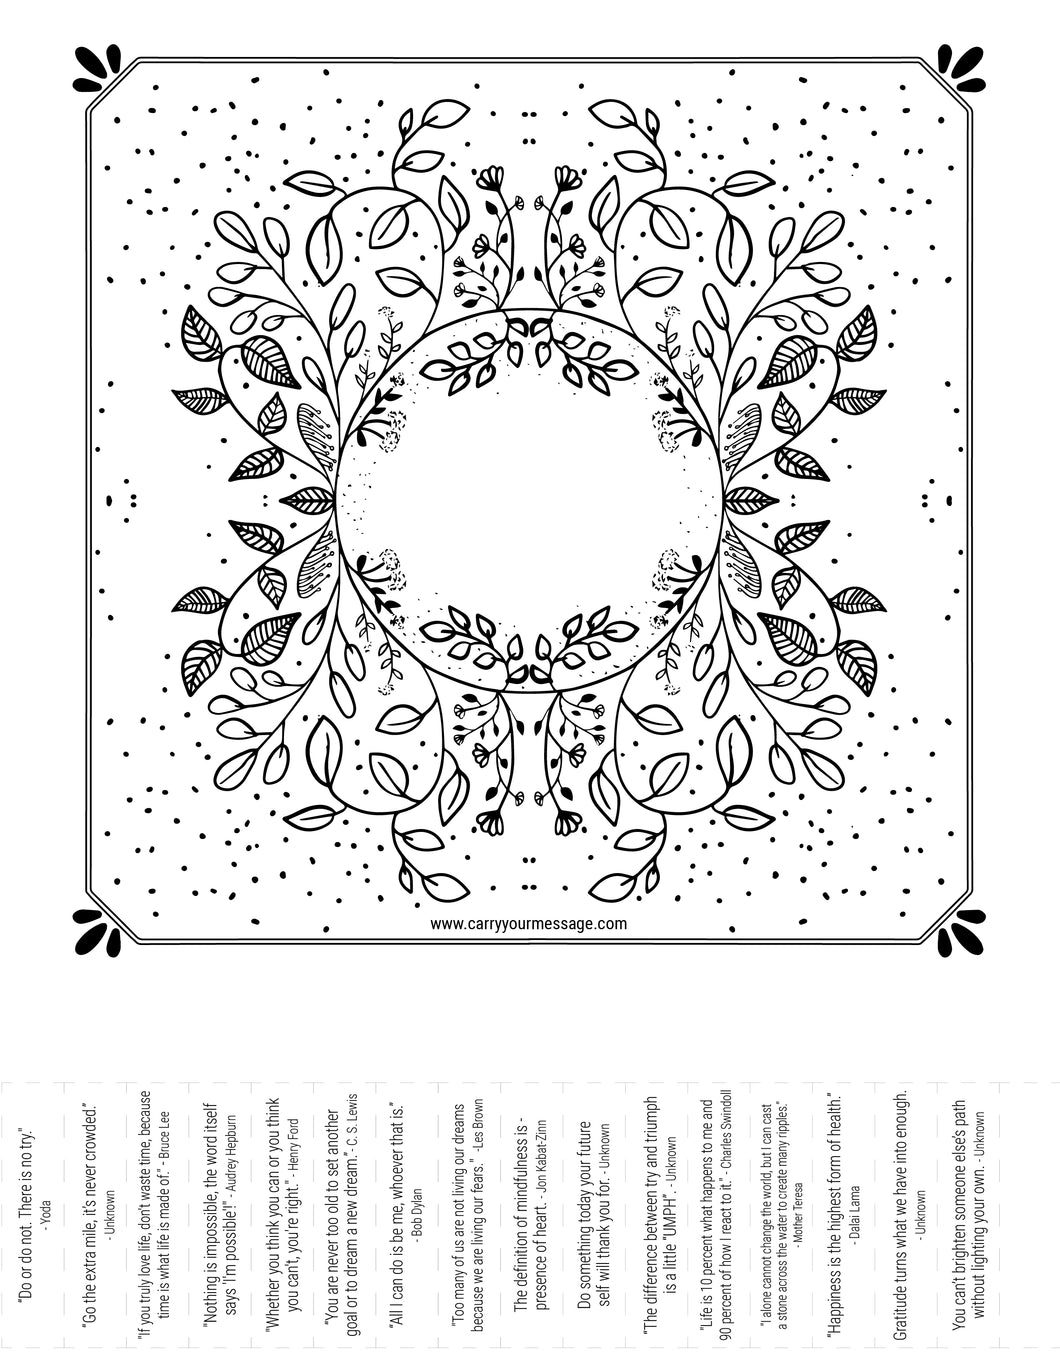 Free CYM Floral Art with Quotes & Blanks